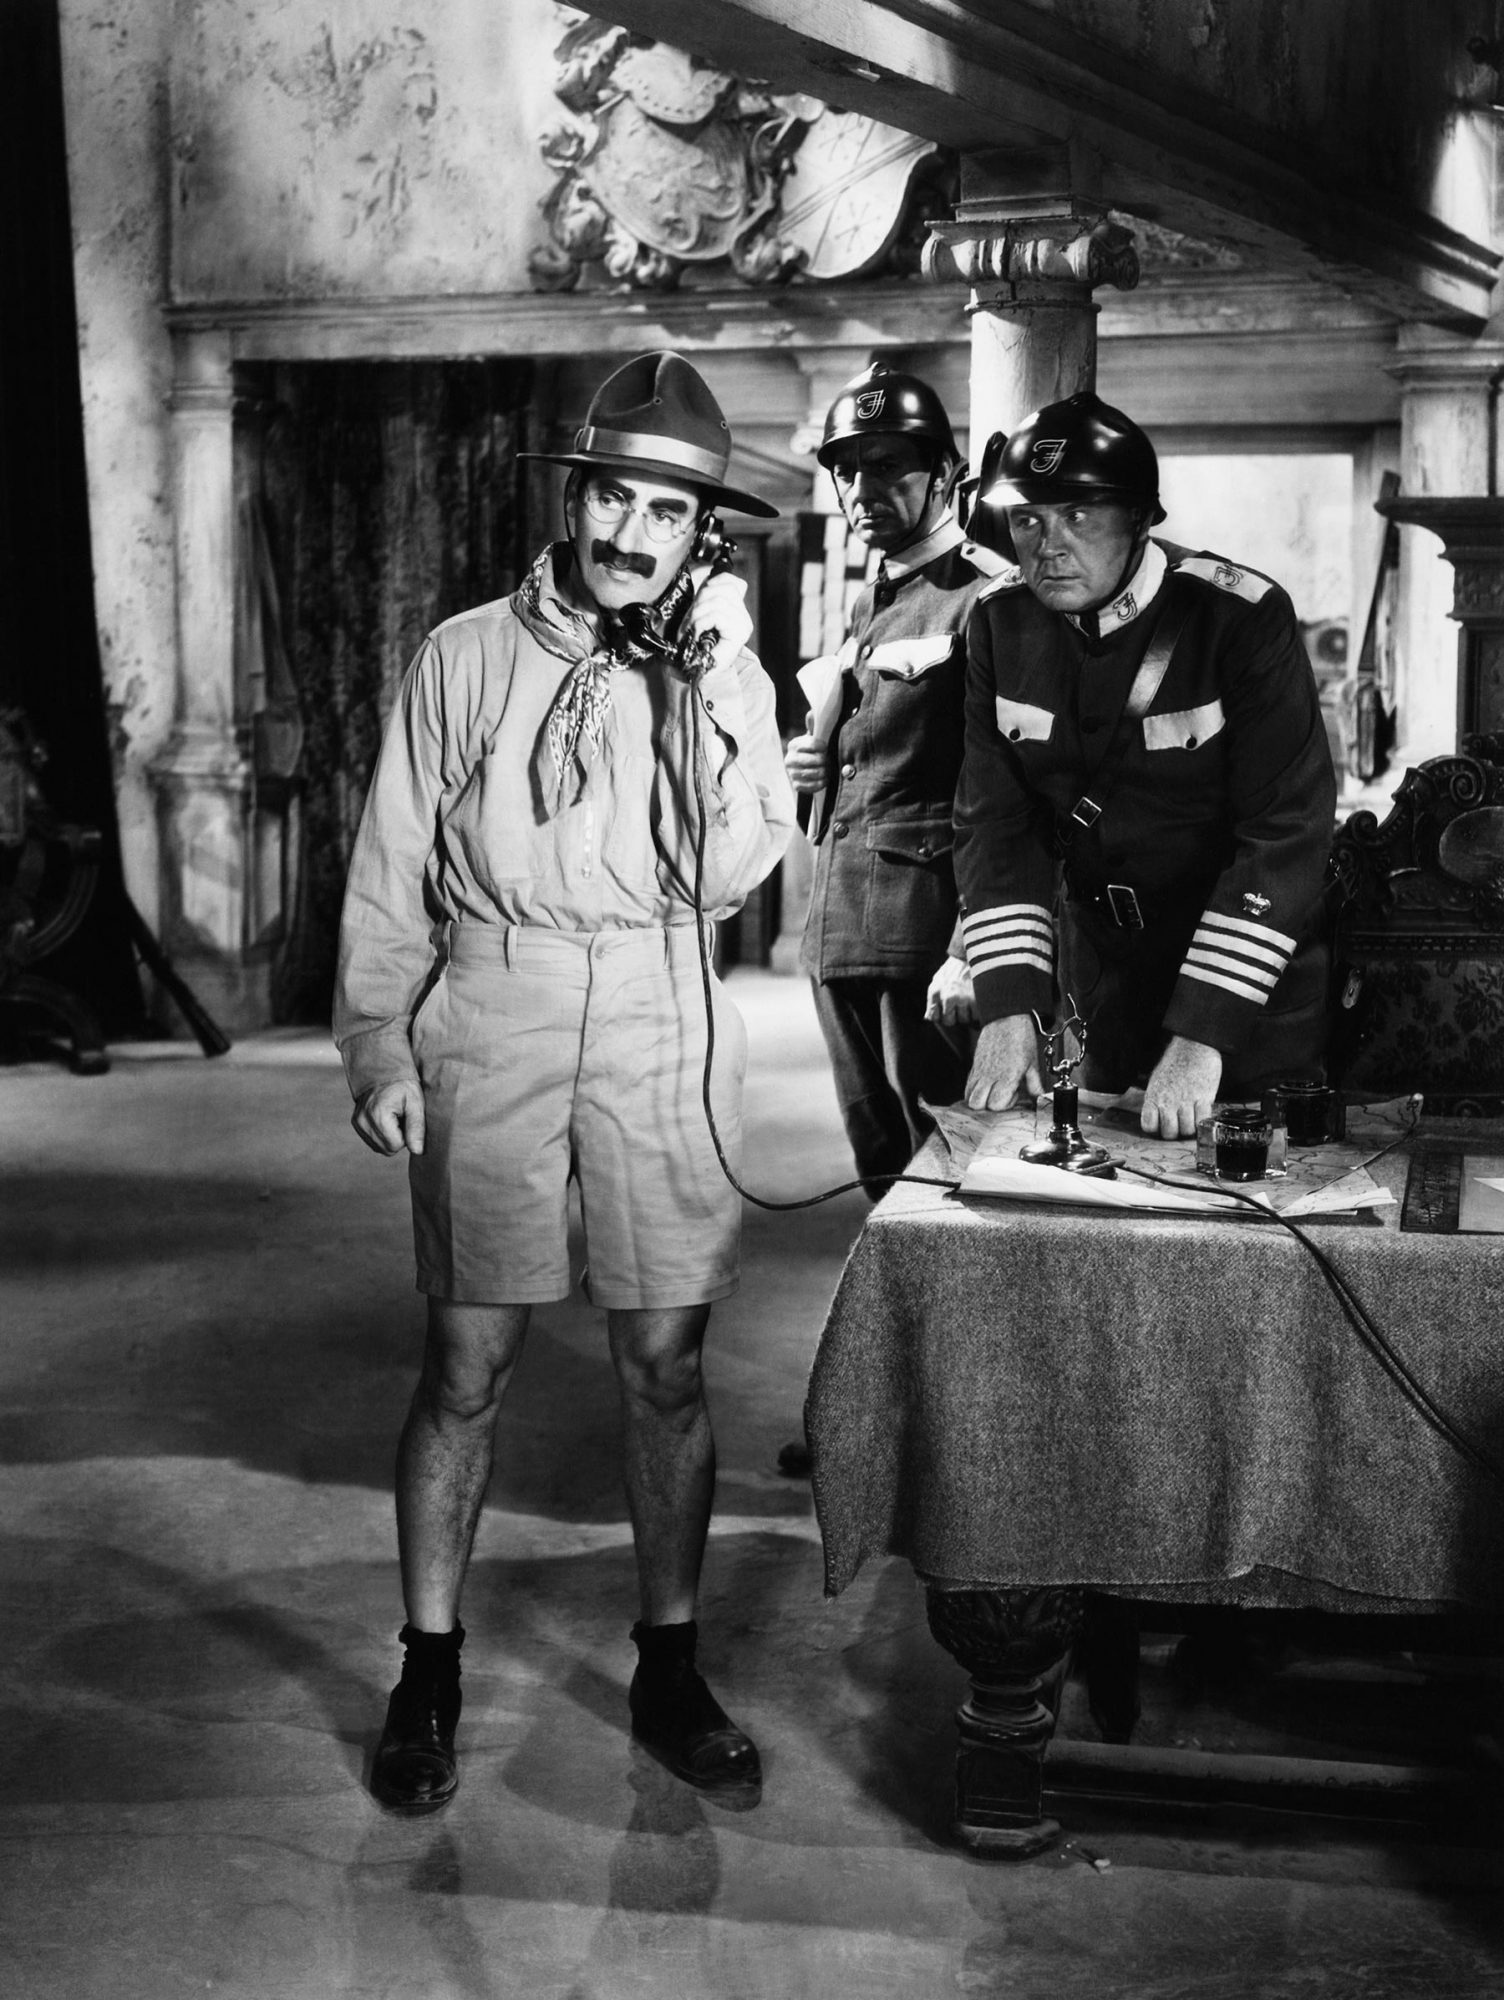 DUCK SOUP, Groucho Marx (with telephone), 1933